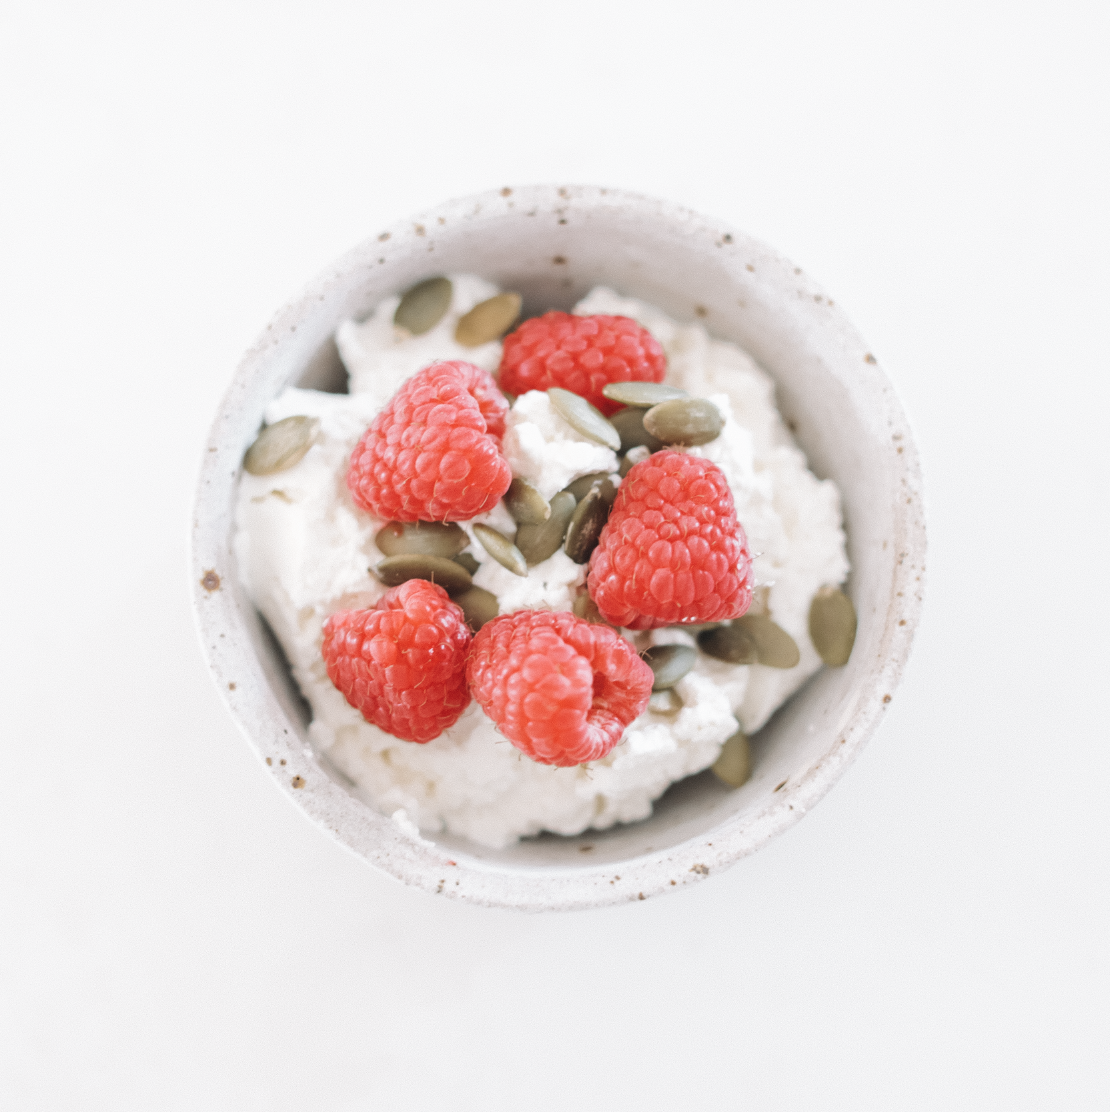 Cottage Cheese Bowl - 182kcal18g P / 8g F / 9g C